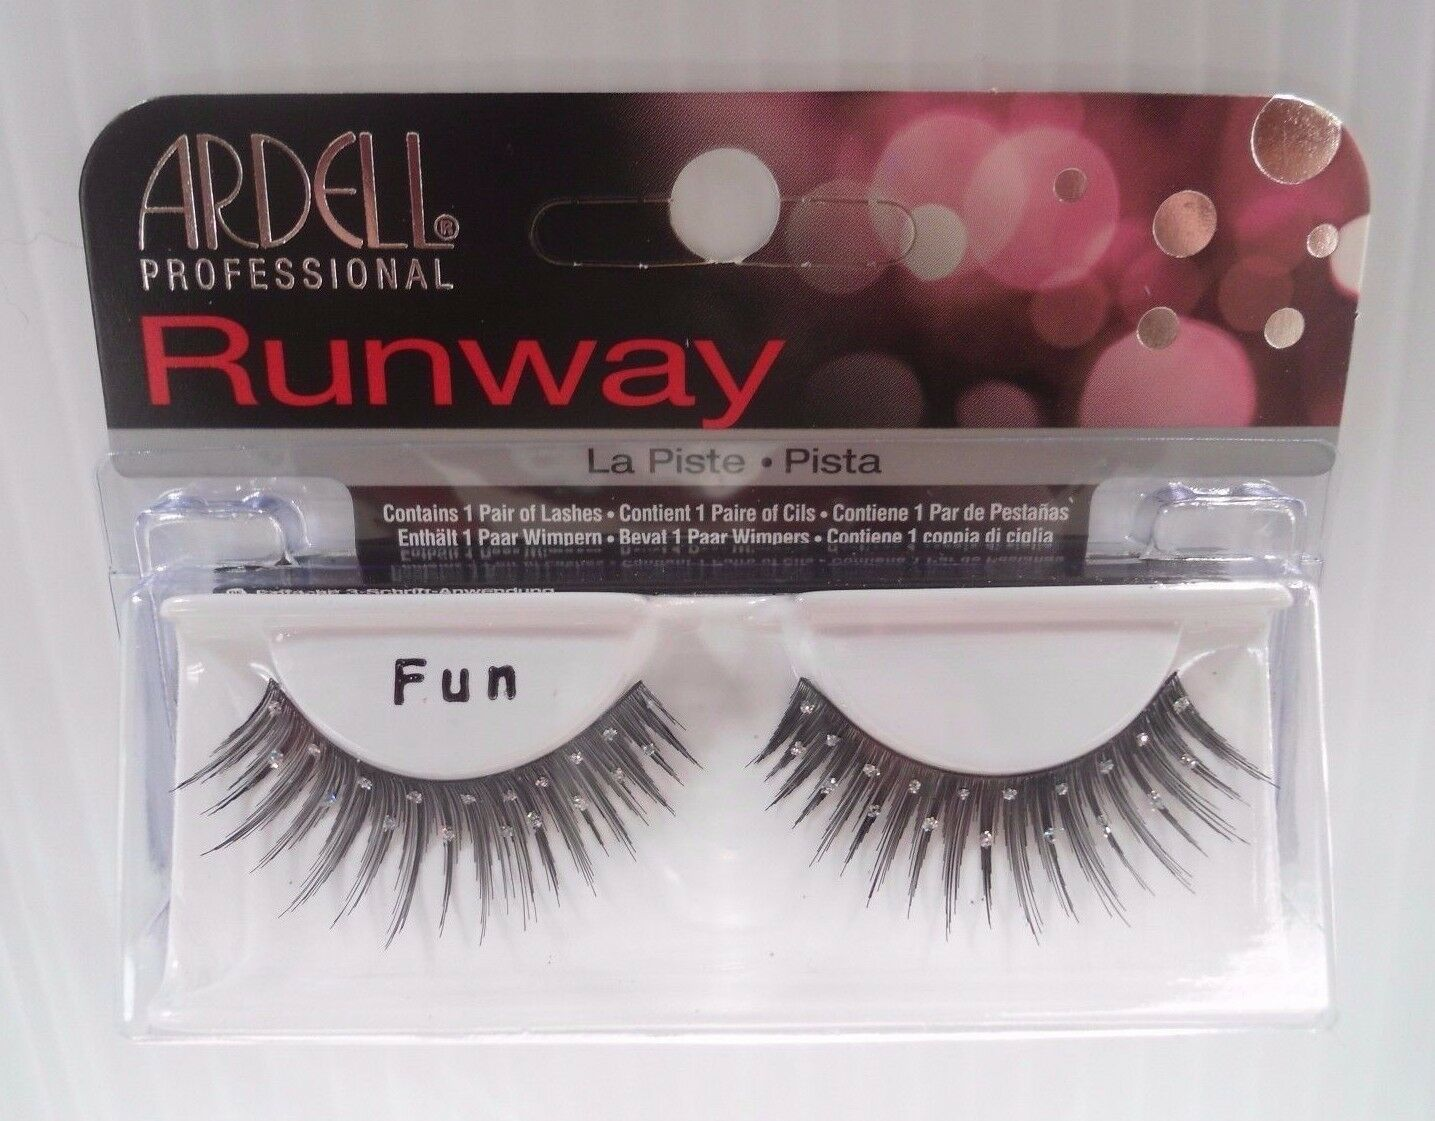 Primary image for Ardell Runway Strip Lashes Fun -Two Rows Glitter Dots (Pack of 2)